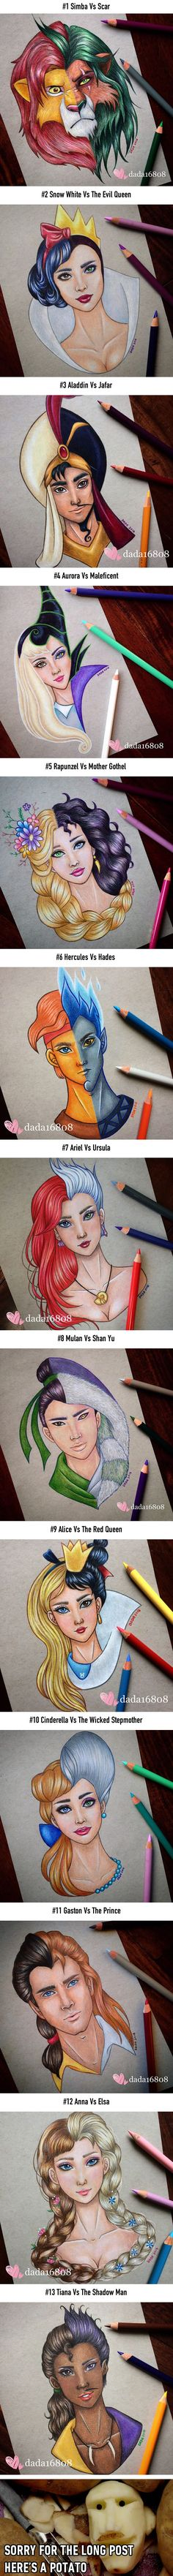 This Artist Merges Disney Heroes With Villains (even if i don't think, elsa is a villain)